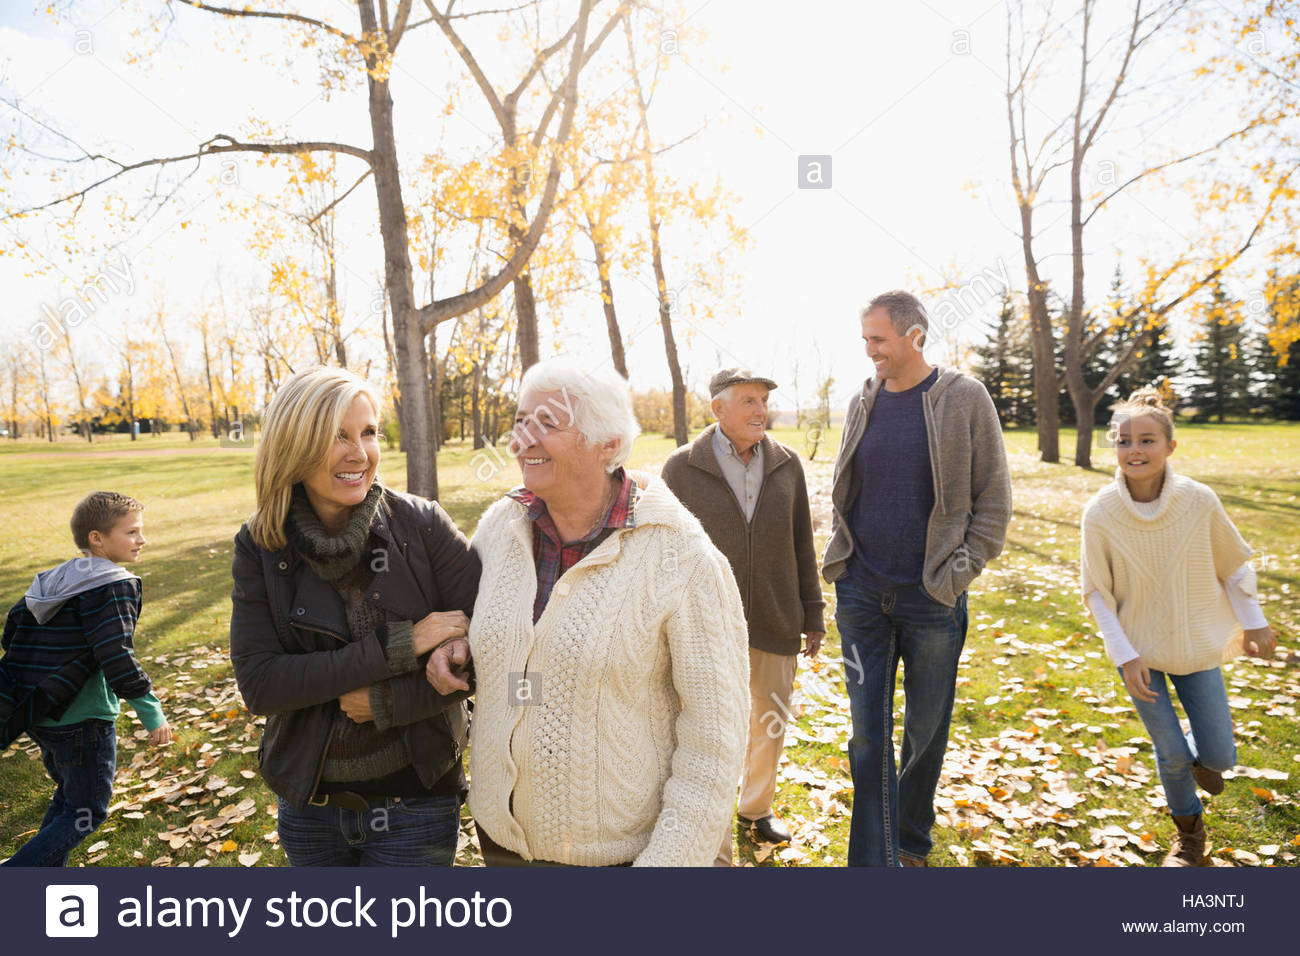 Multi-generation family walking in sunny autumn park - Stock Image